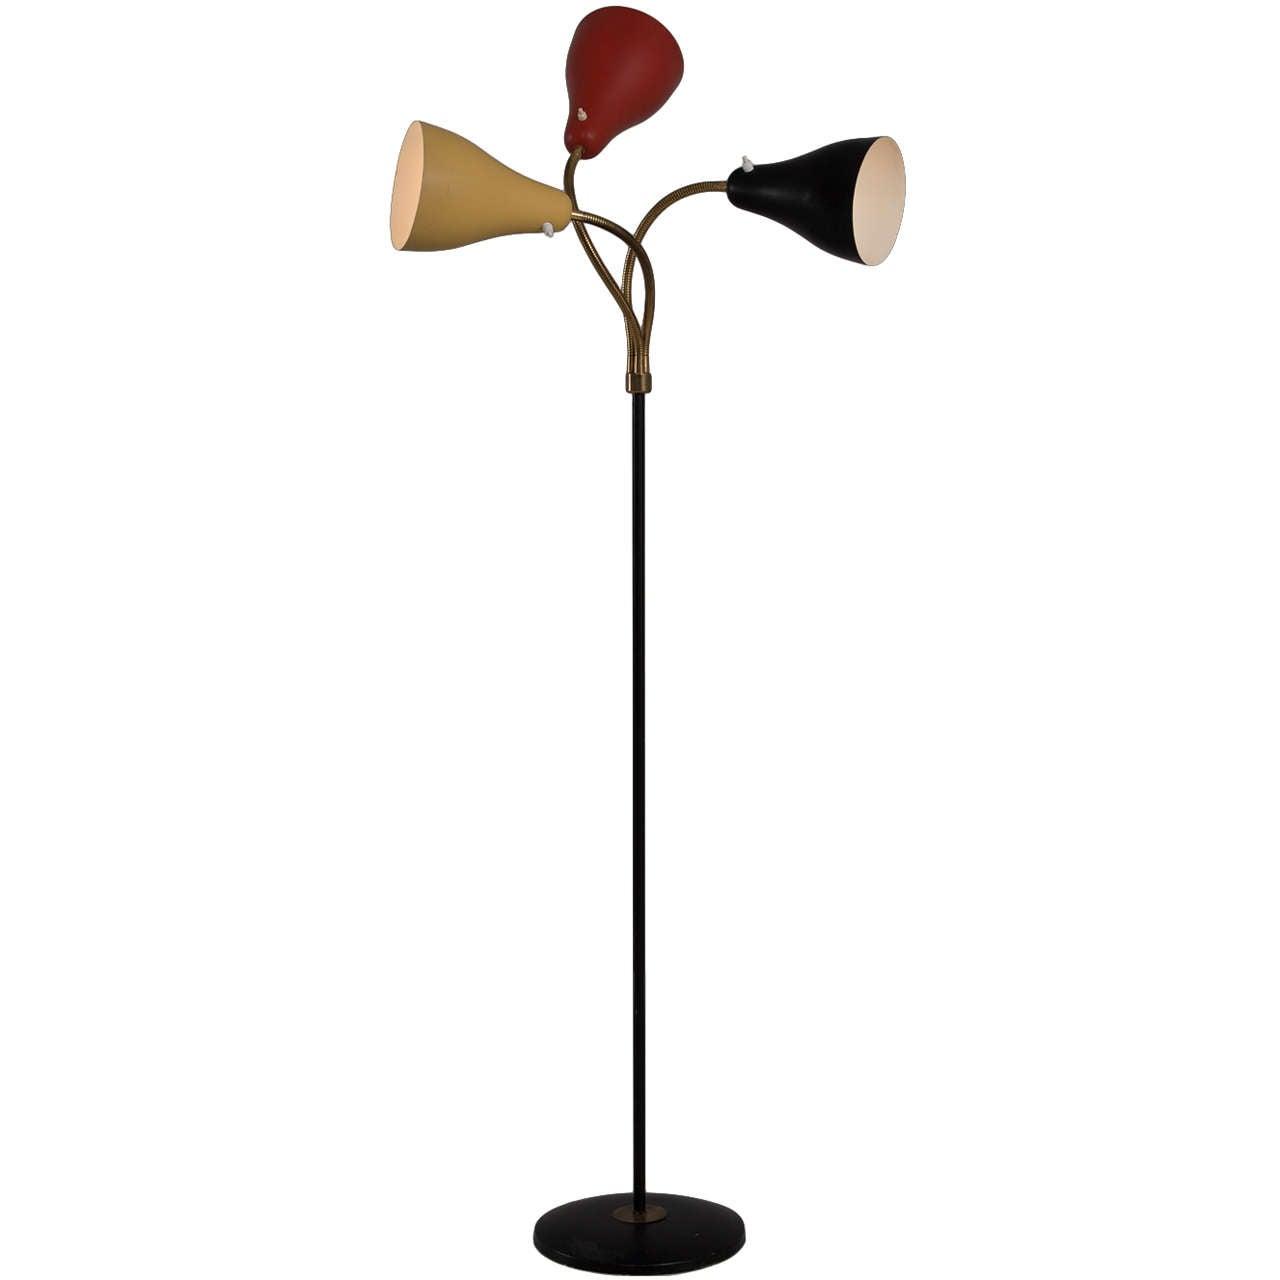 Italian 1950s floor lamp with coloured metal shades for for 1950s floor lamps